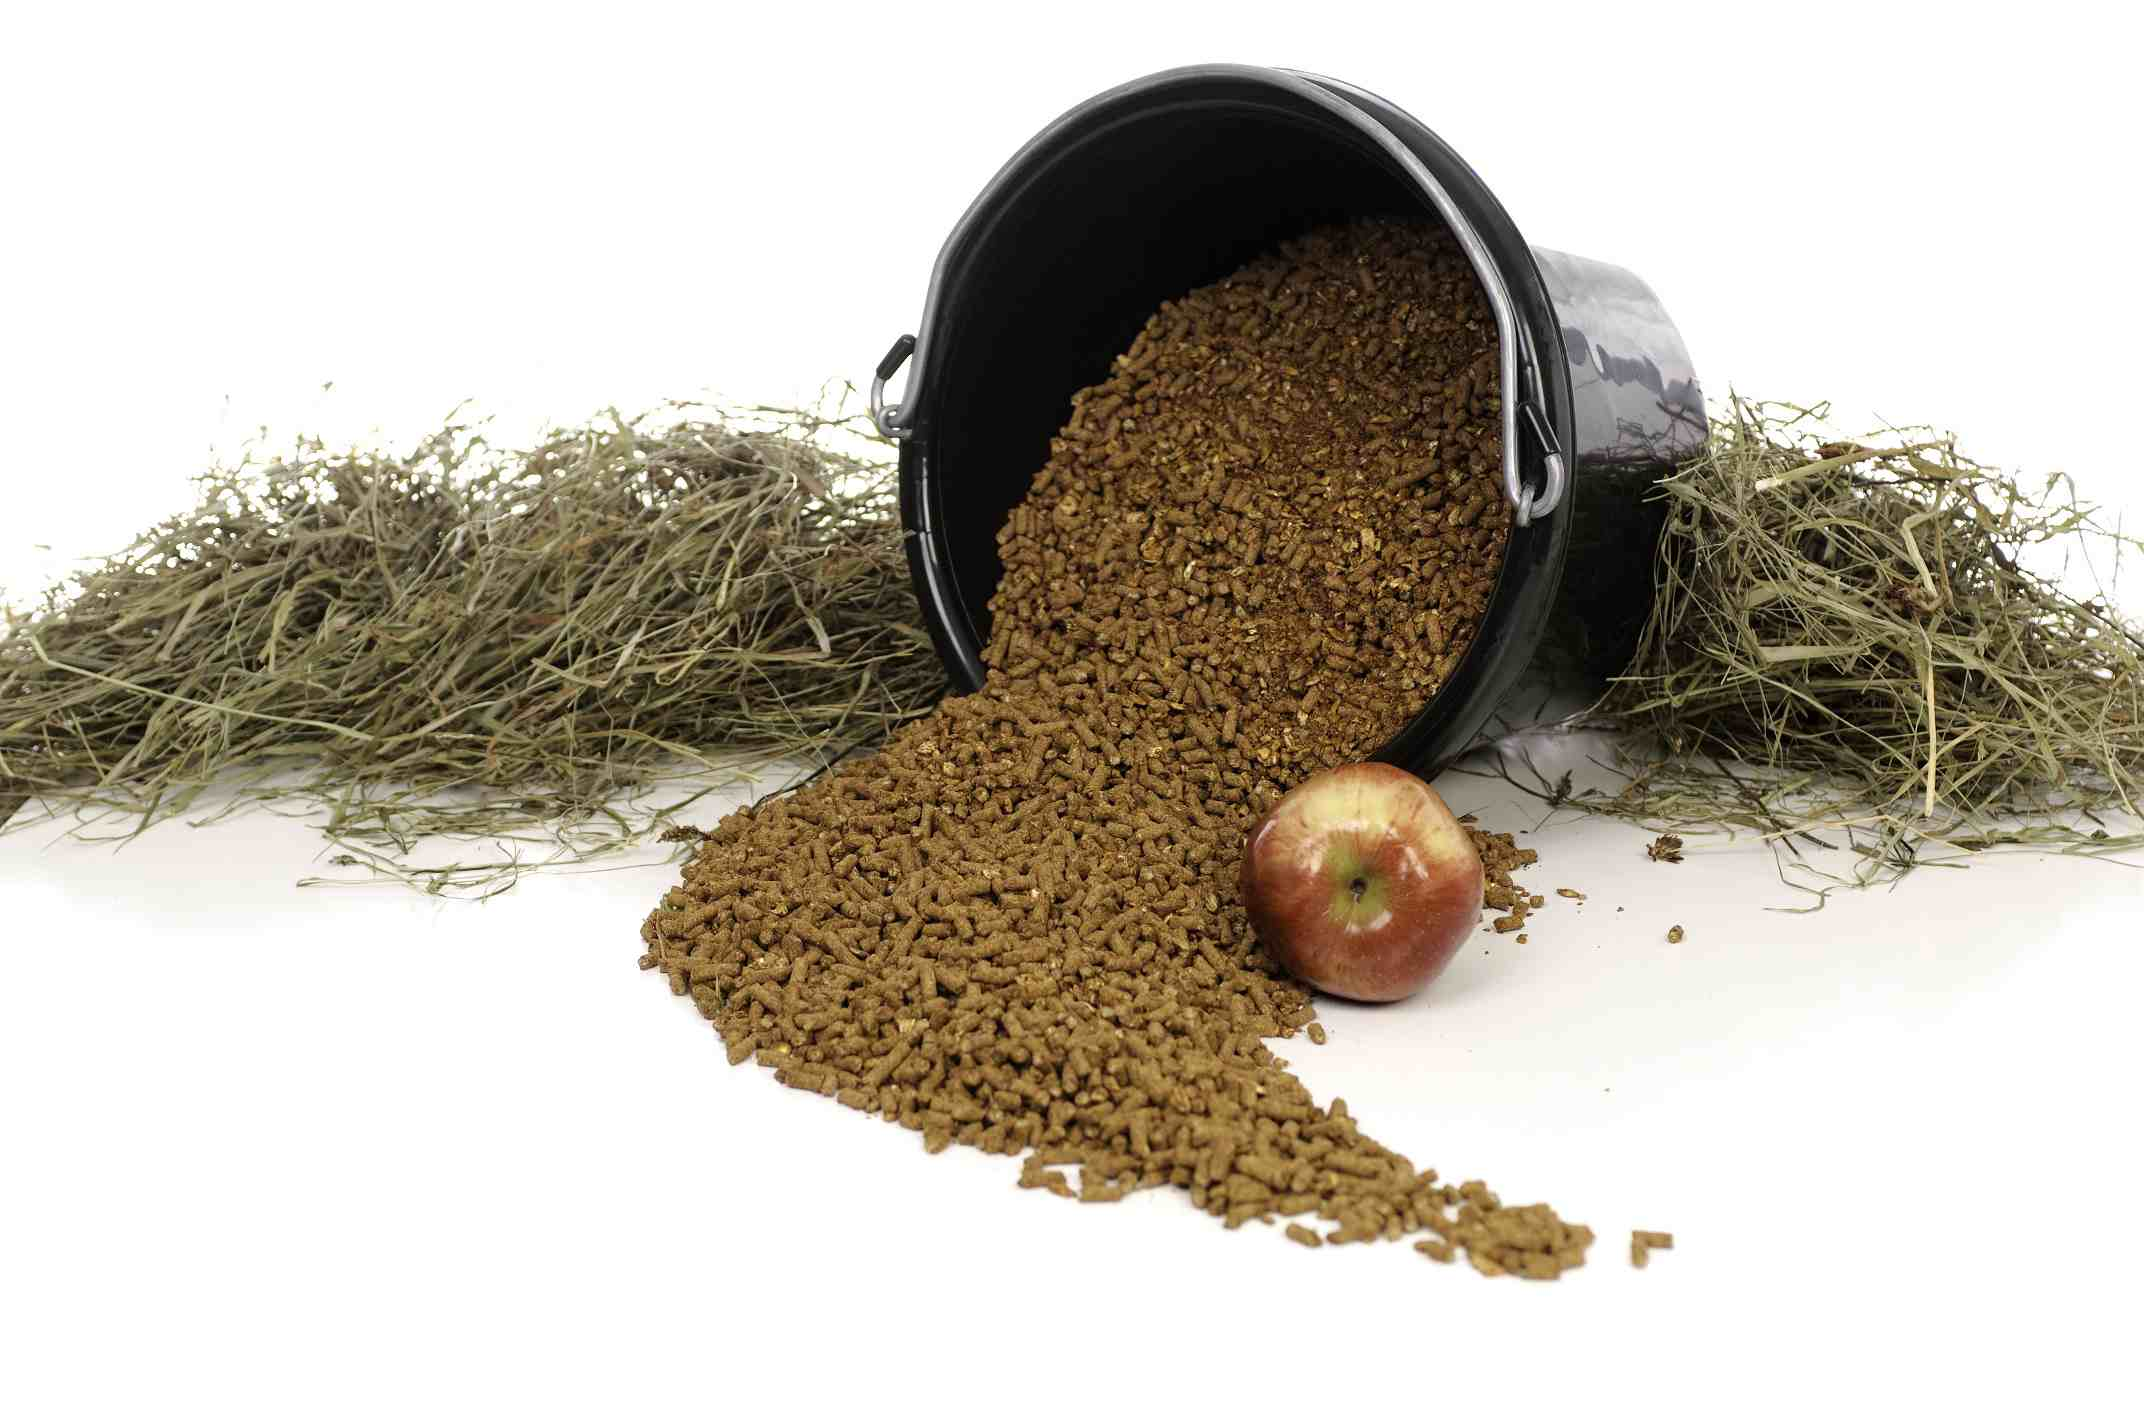 Grain spilling out of a black bucket near a pile of hay and one apple.